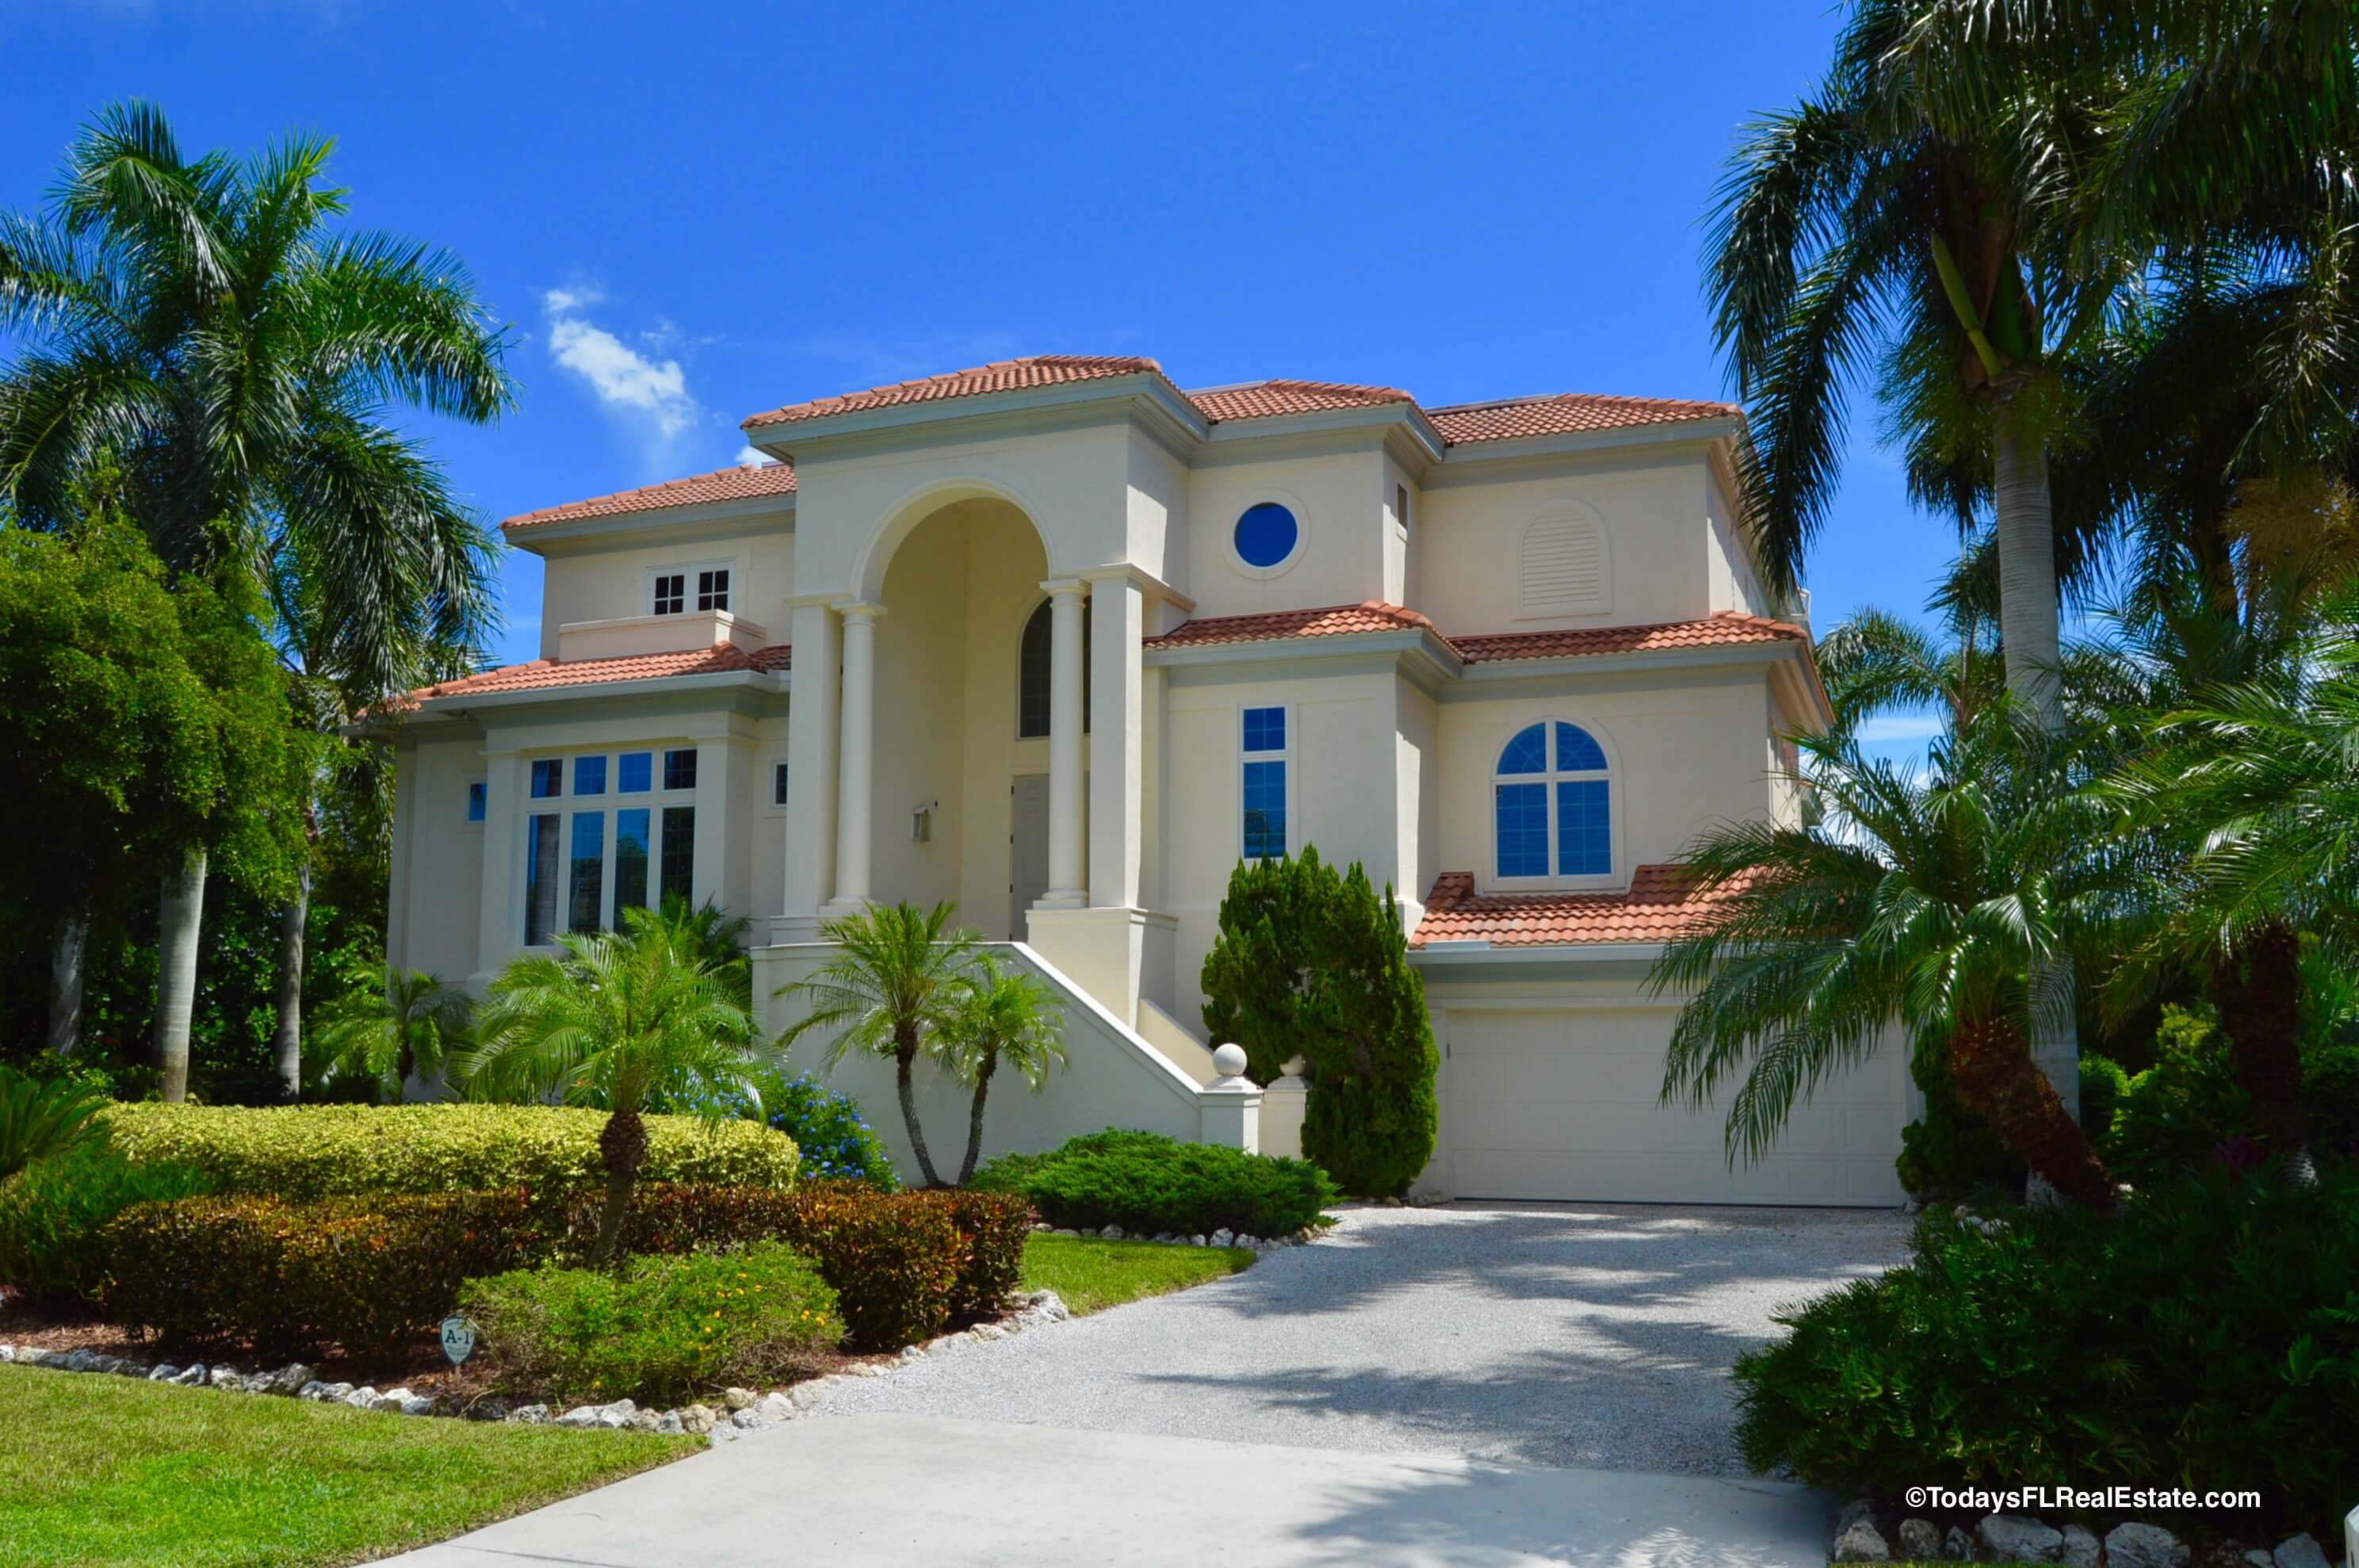 today 39 s florida real estate todays fl real estate